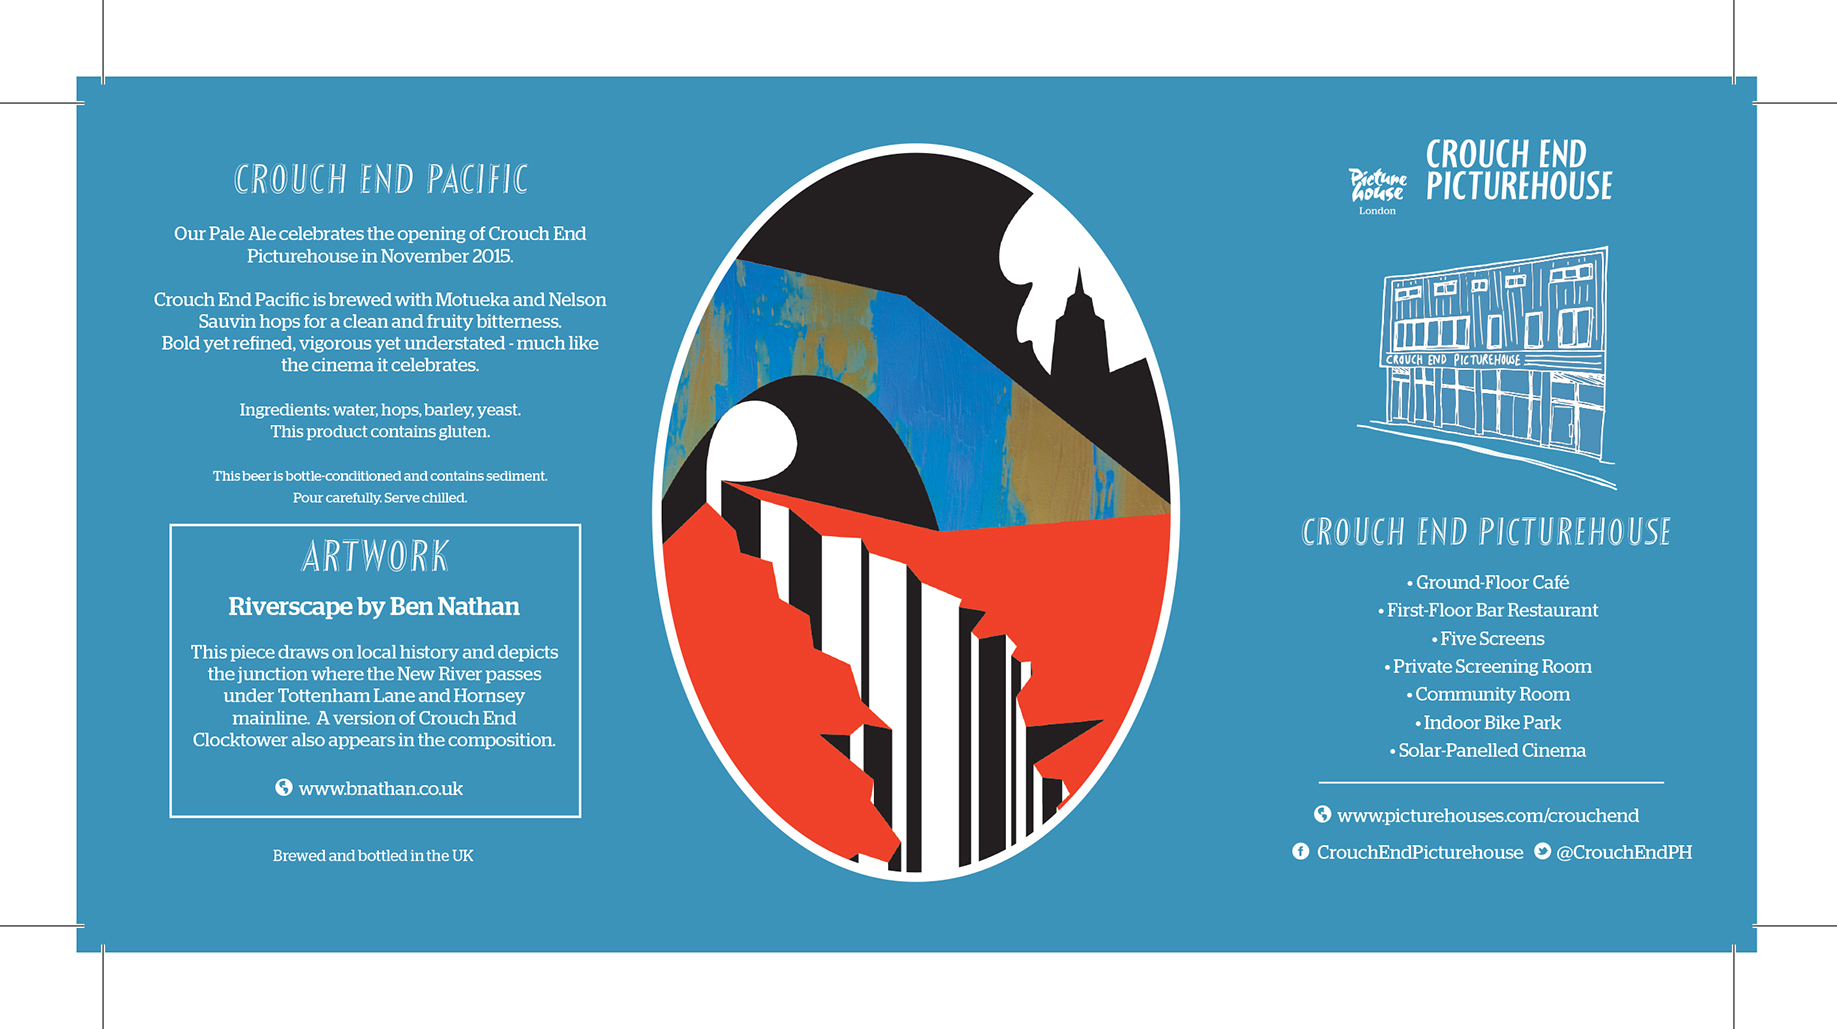 Limited edition IPA. Crouch End Pacific. Bottled for the opening of Crouch End Picturehouse. Art work by Ben Nathan